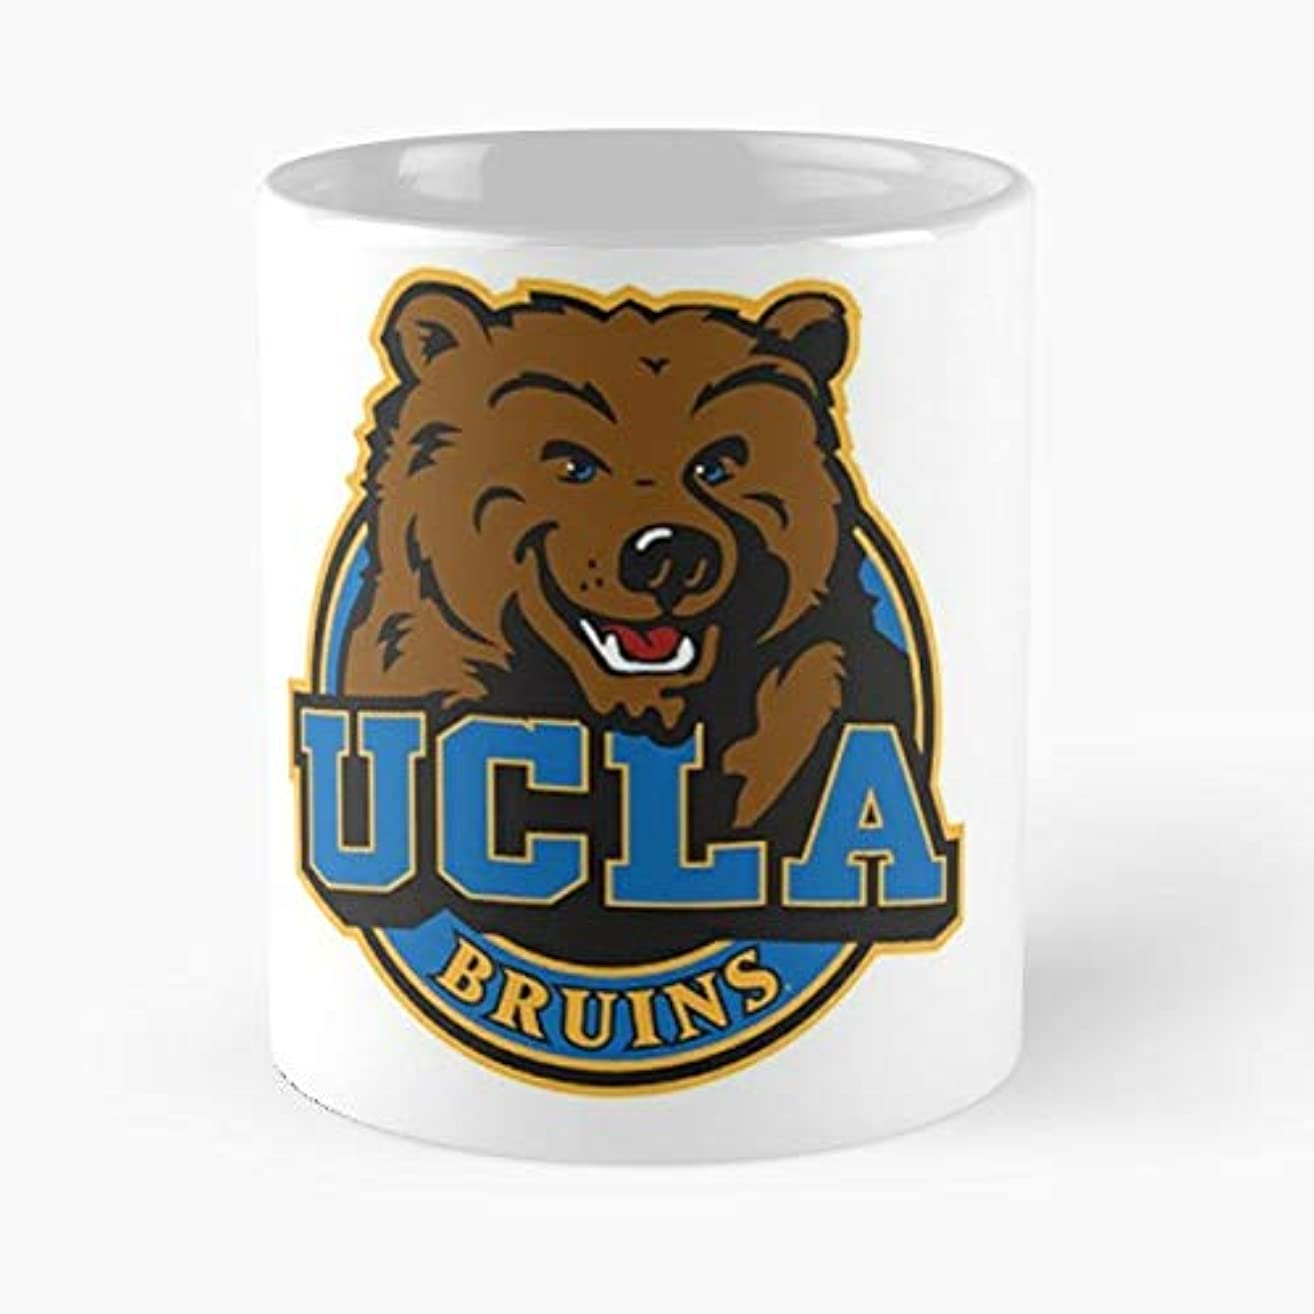 Ucla California Los Angeles Bruines - Coffee Mugs Unique Ceramic Novelty Cup Best Gift